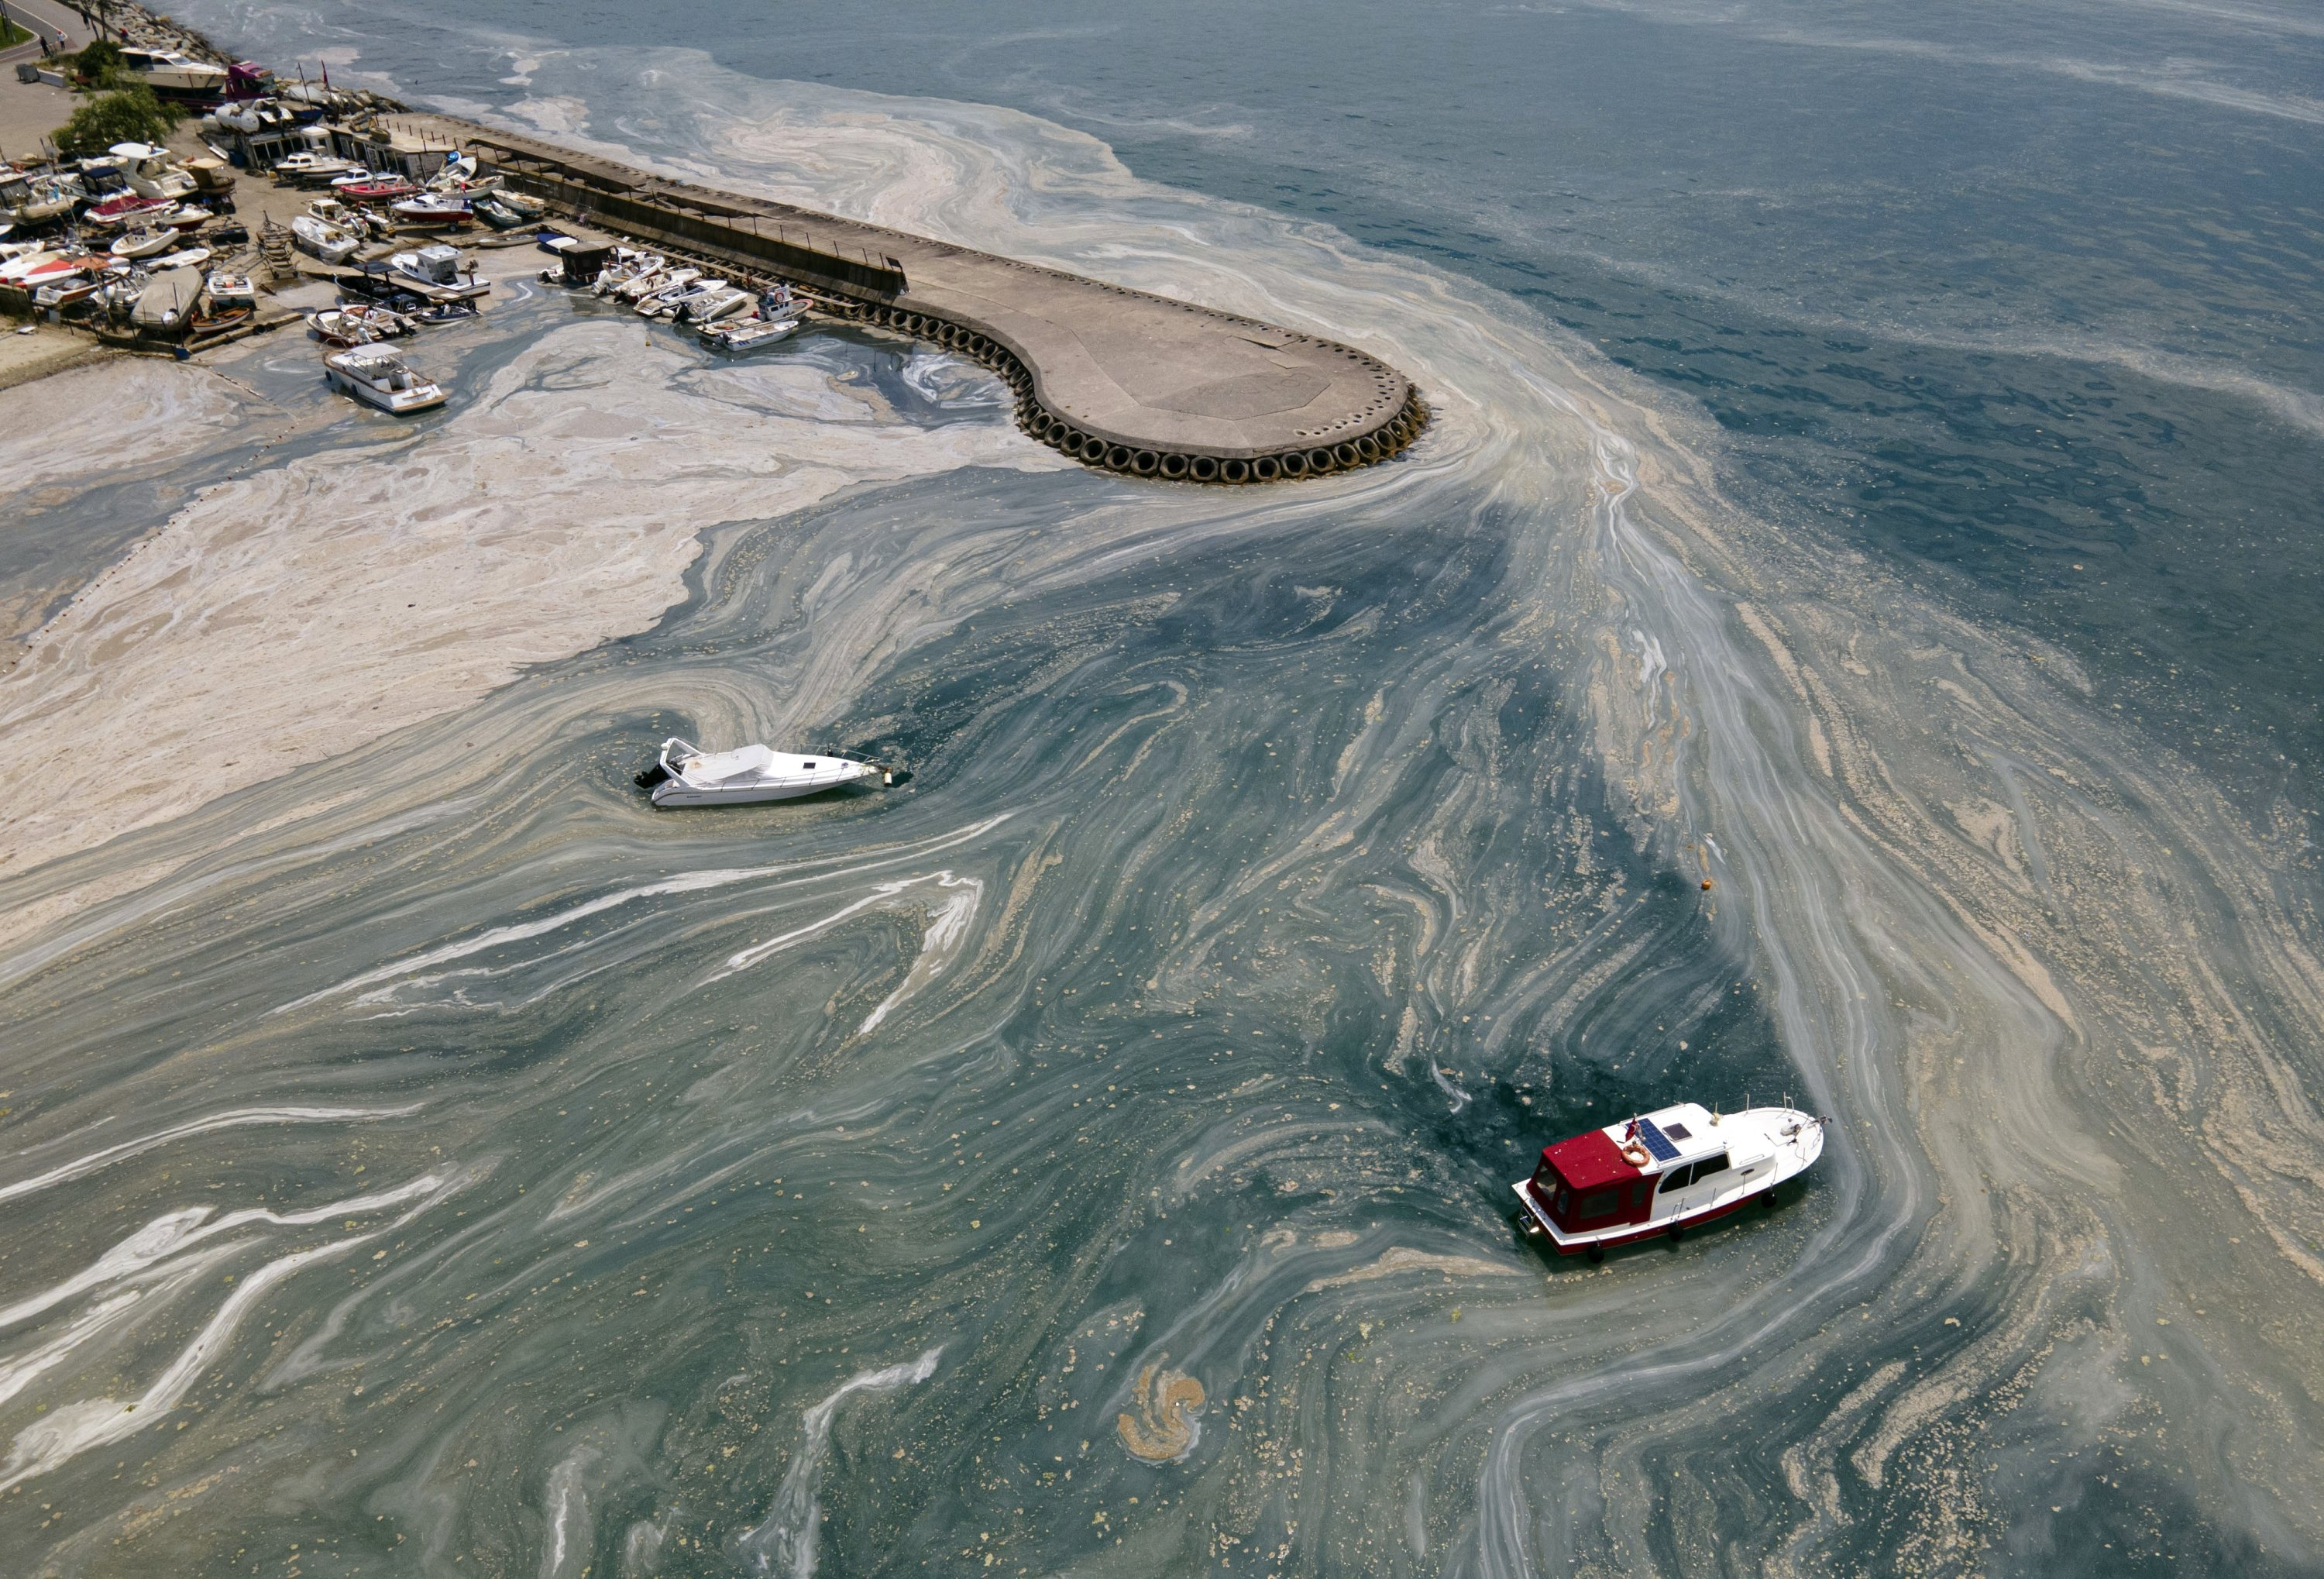 Boats wade in a huge mass of marine mucilage in the Marmara Sea near the Caddebostan shore, on the Asian side of Istanbul, Turkey, June 7, 2021. (AP Photo)